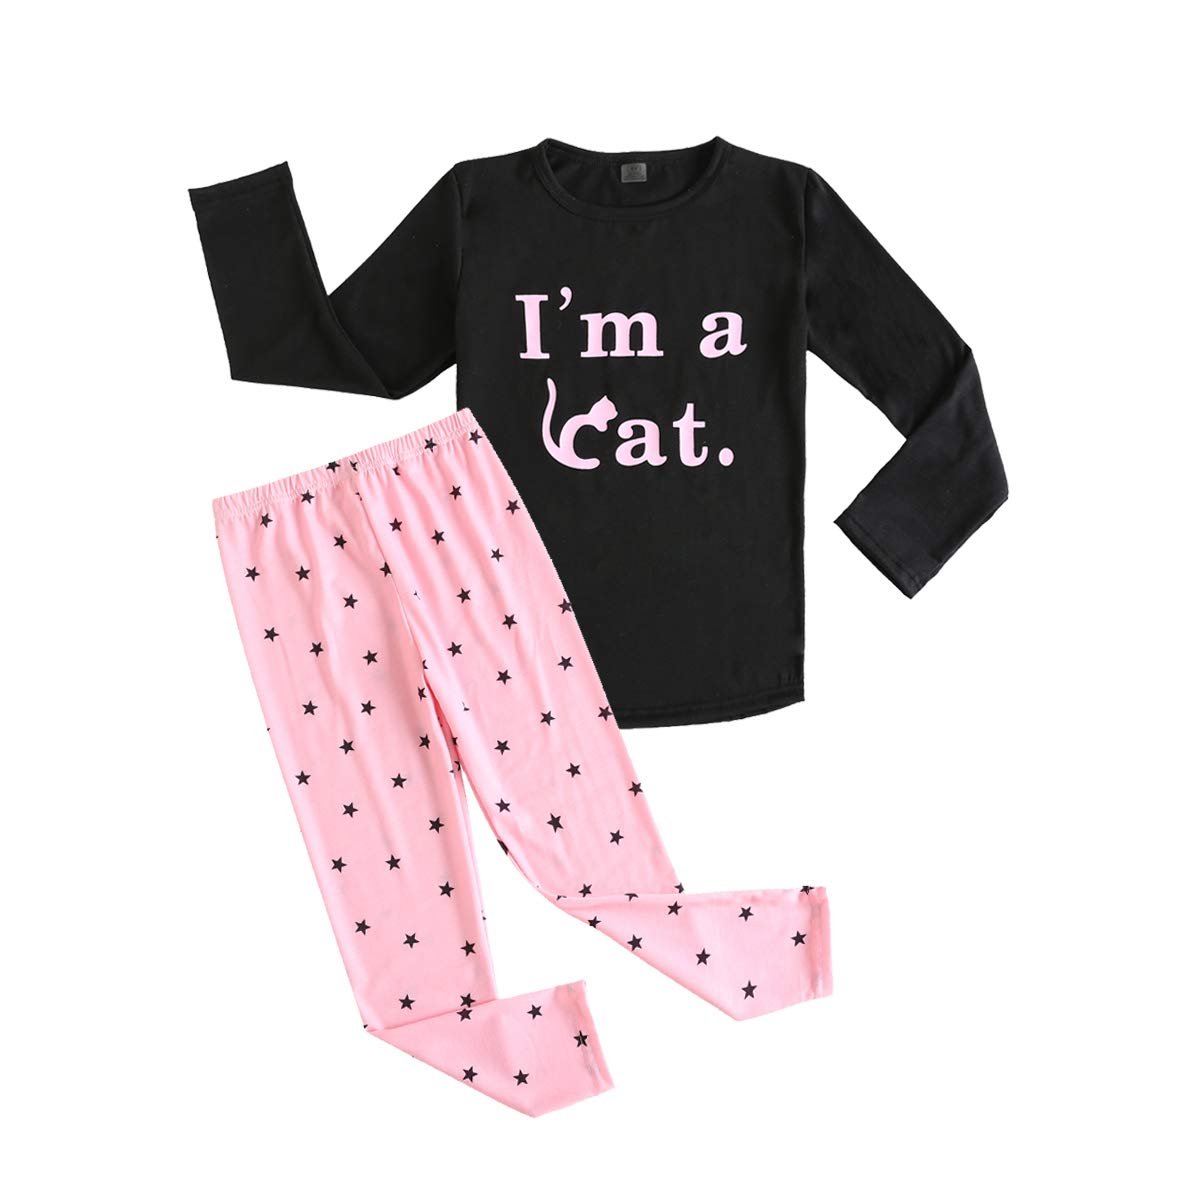 3ef96b8153e4 MyFav Big Girls Cat Letter Print Pajama Sets Cotton Sleepwear Size 6-14  Years